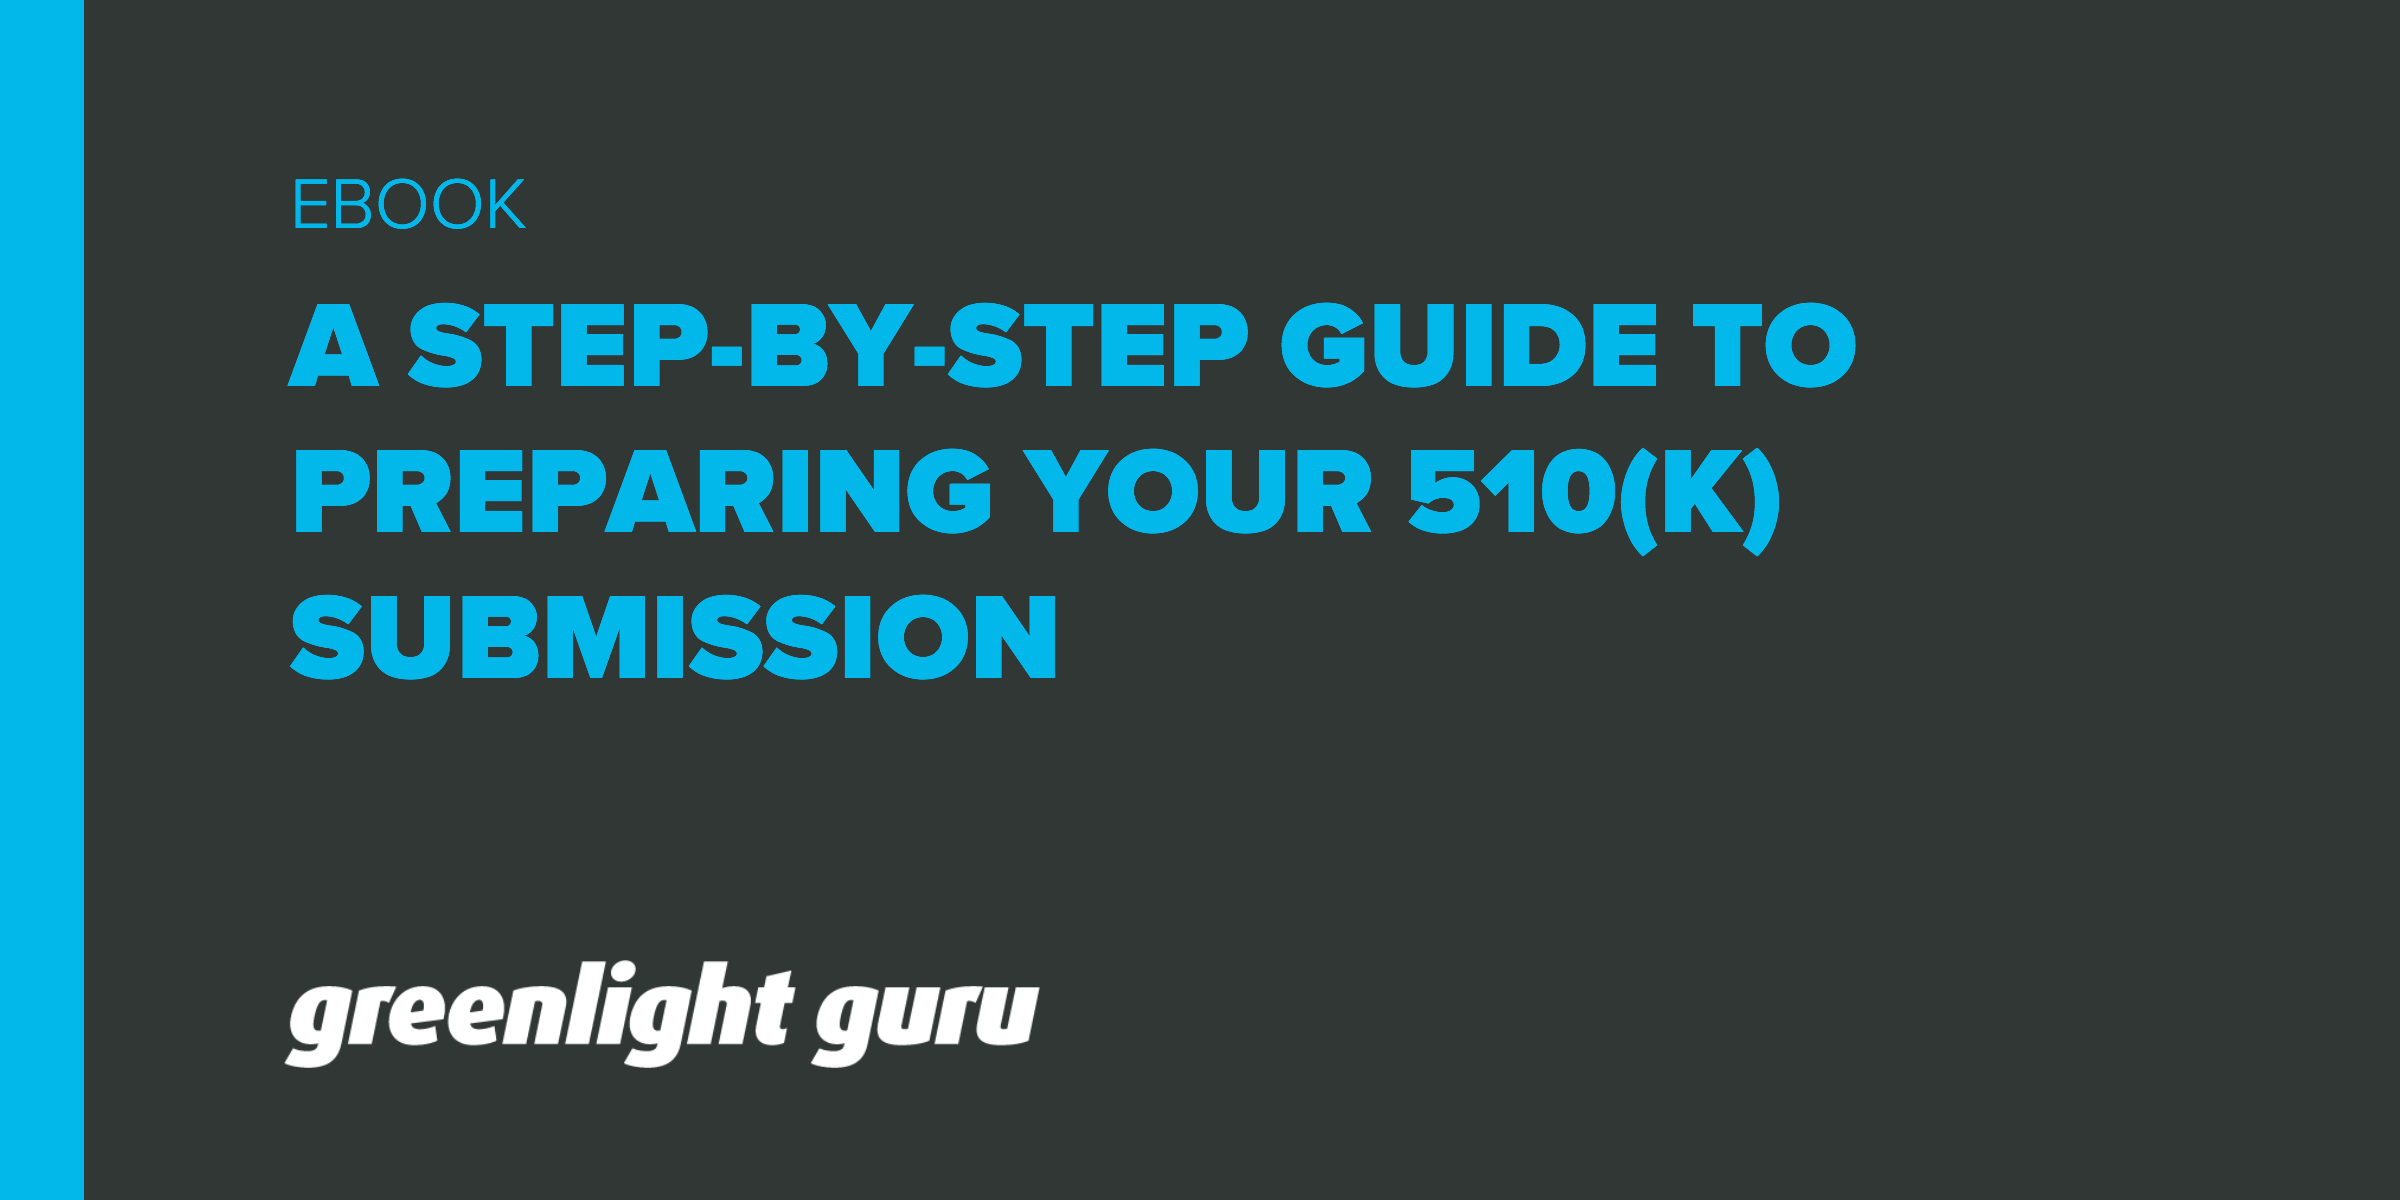 A Step-by-Step Guide to Preparing Your FDA 510(k) Submission - Featured Image